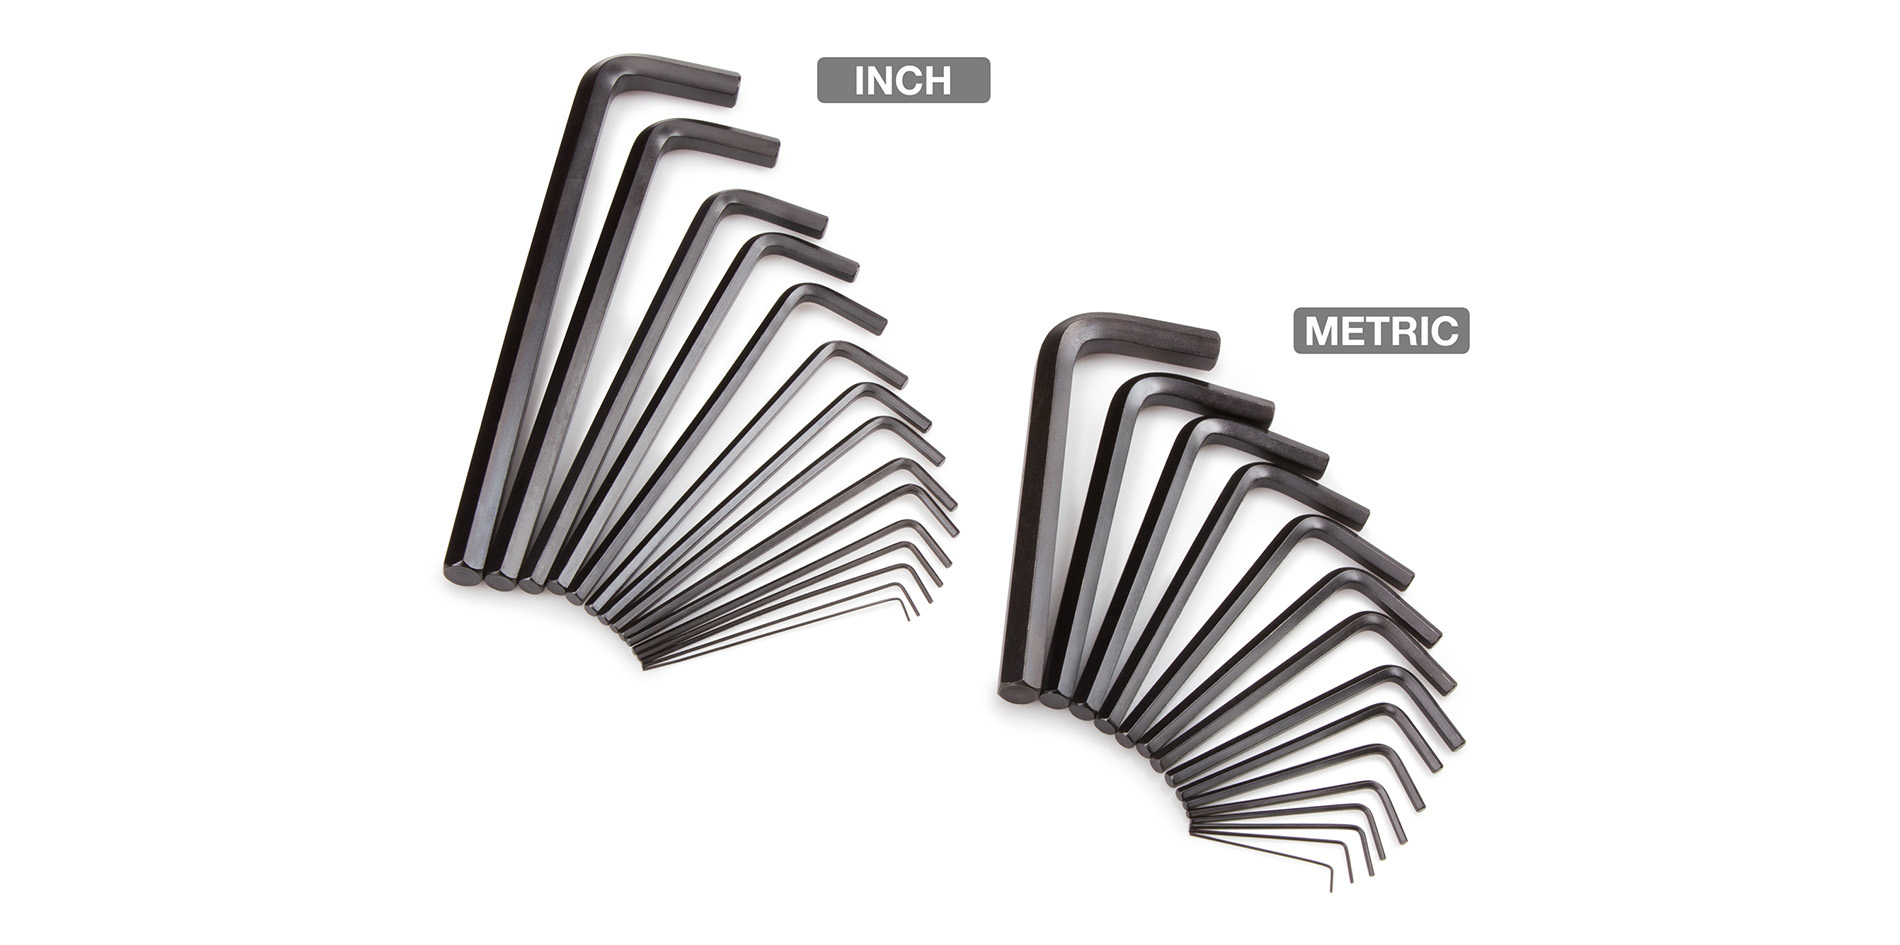 Image of various size long arm and short arm hex keys